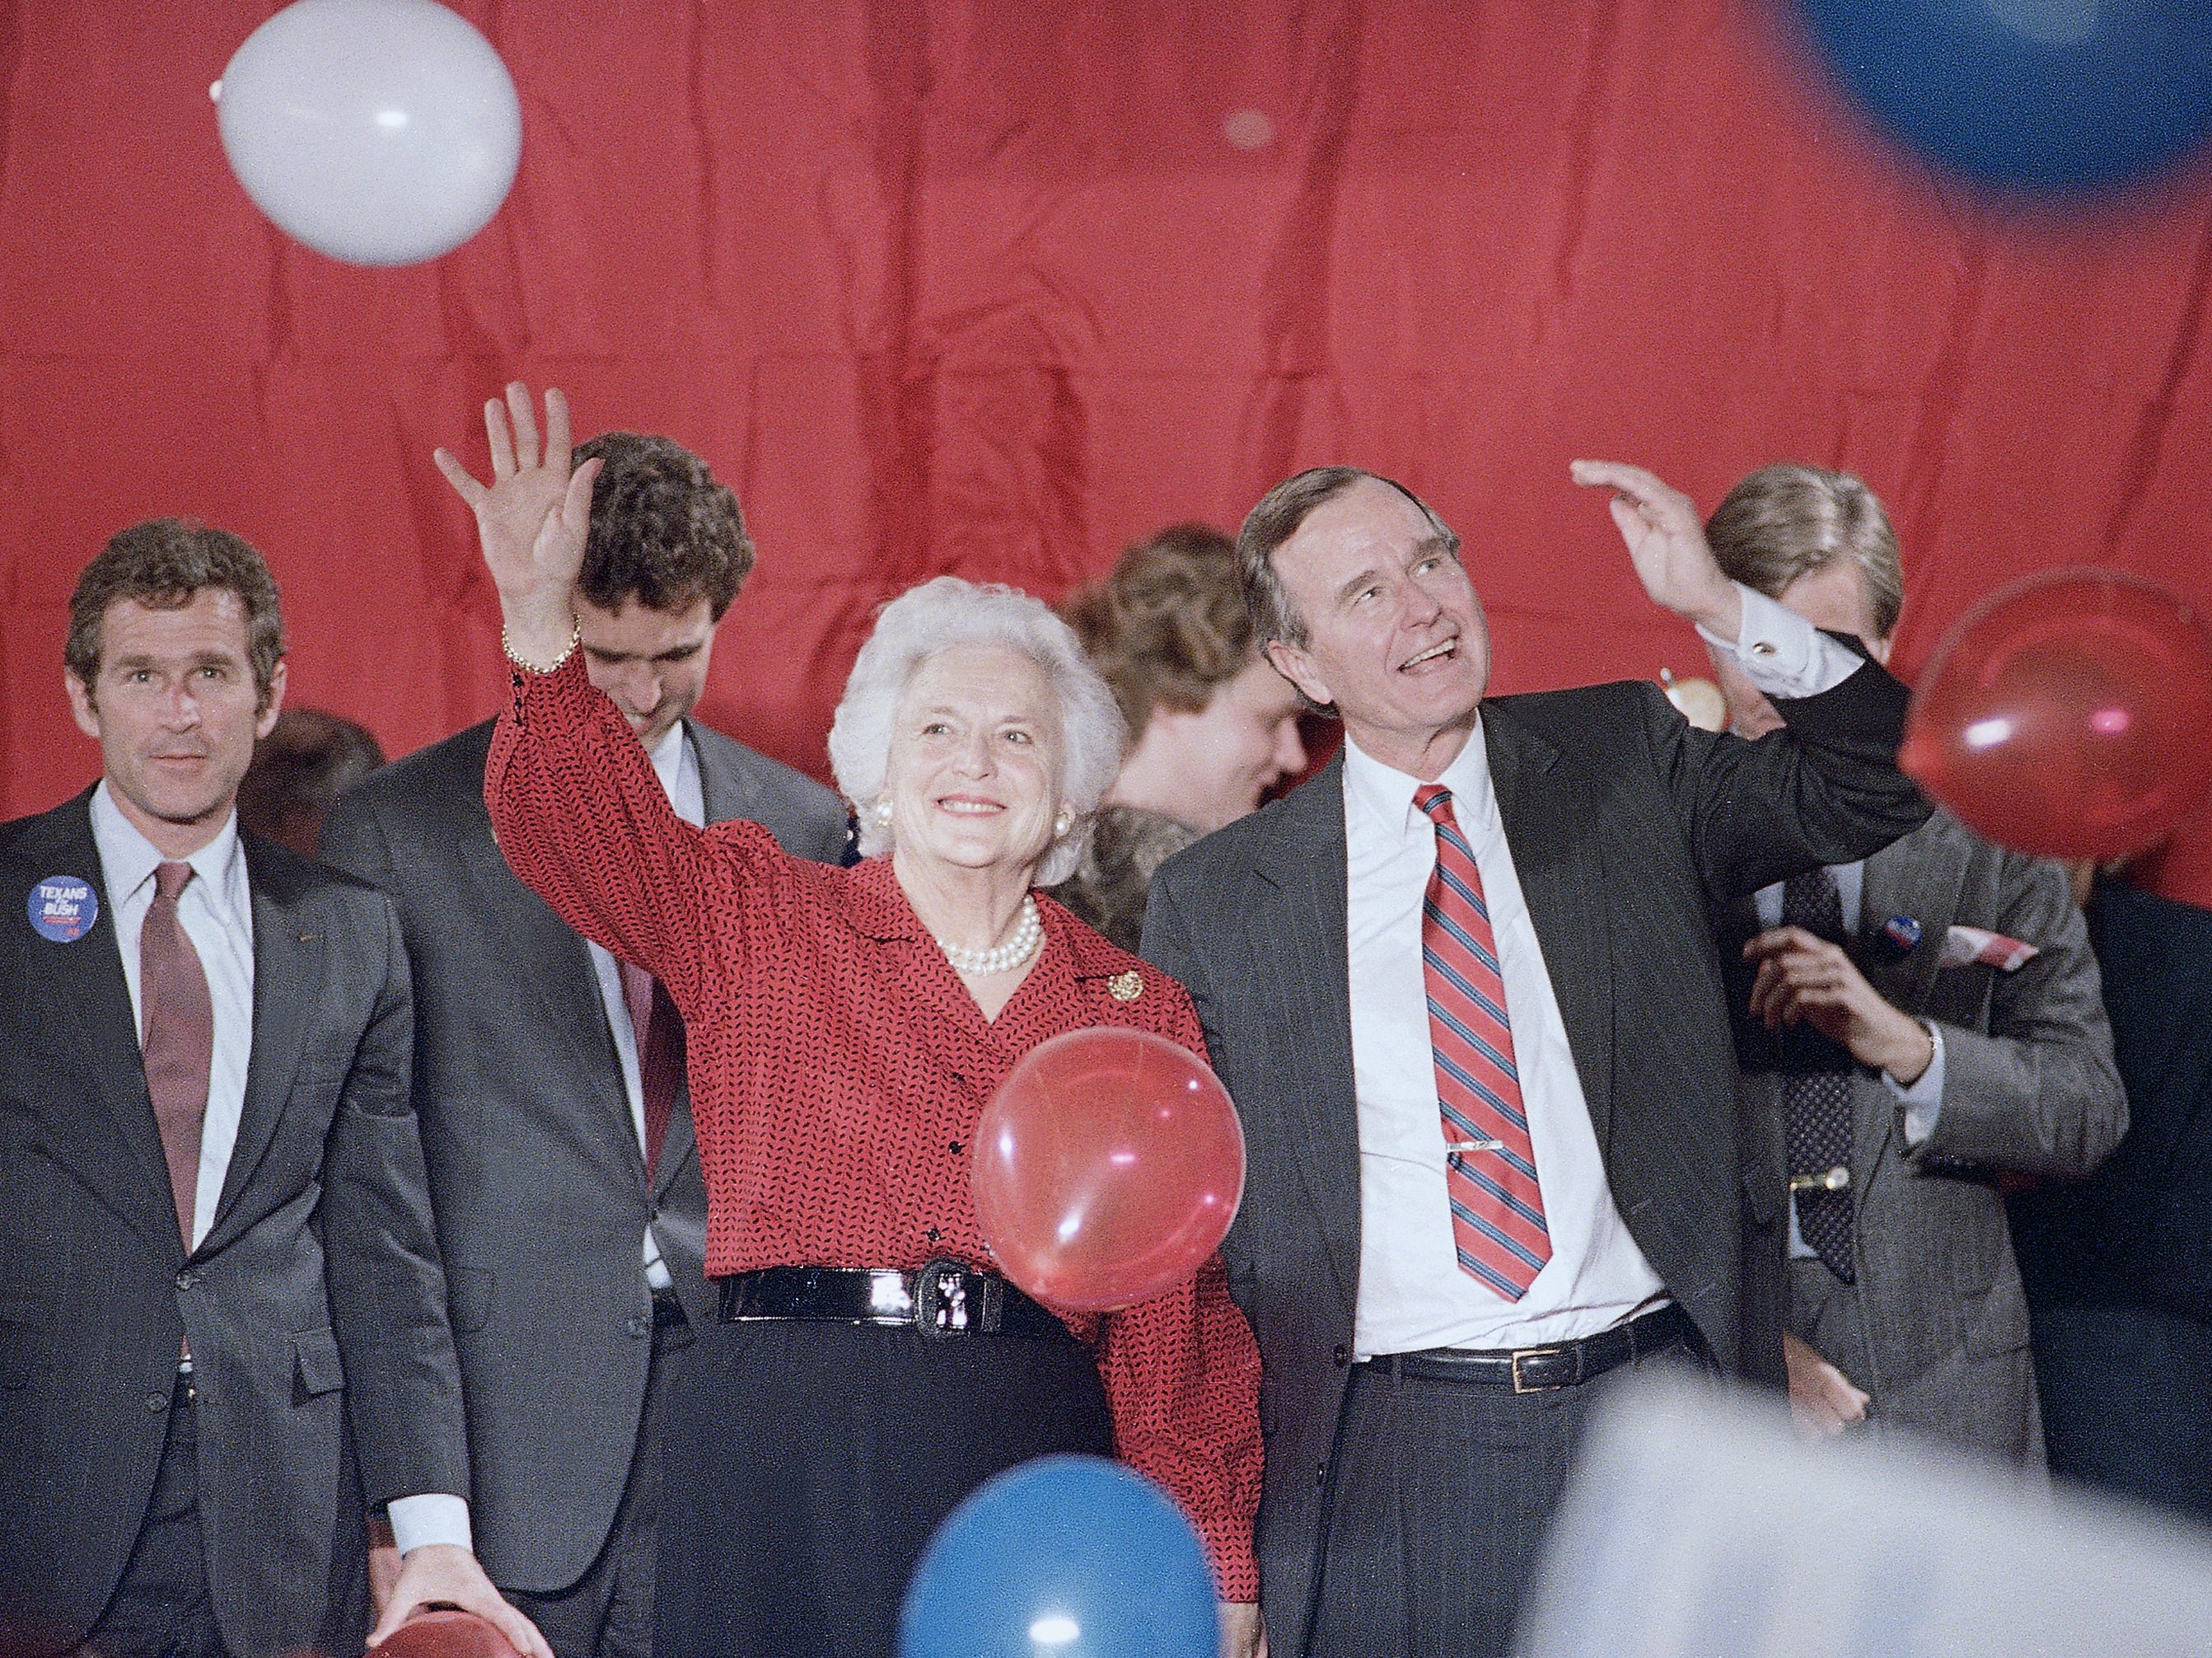 Vice President George H. Bush and Barbara Bush wave as balloons are dropped during a welcome rally in Houston, Nov. 8, 1988.  Bush will watch the election results in Houston on Tuesday. (AP Photo/John Duricka)